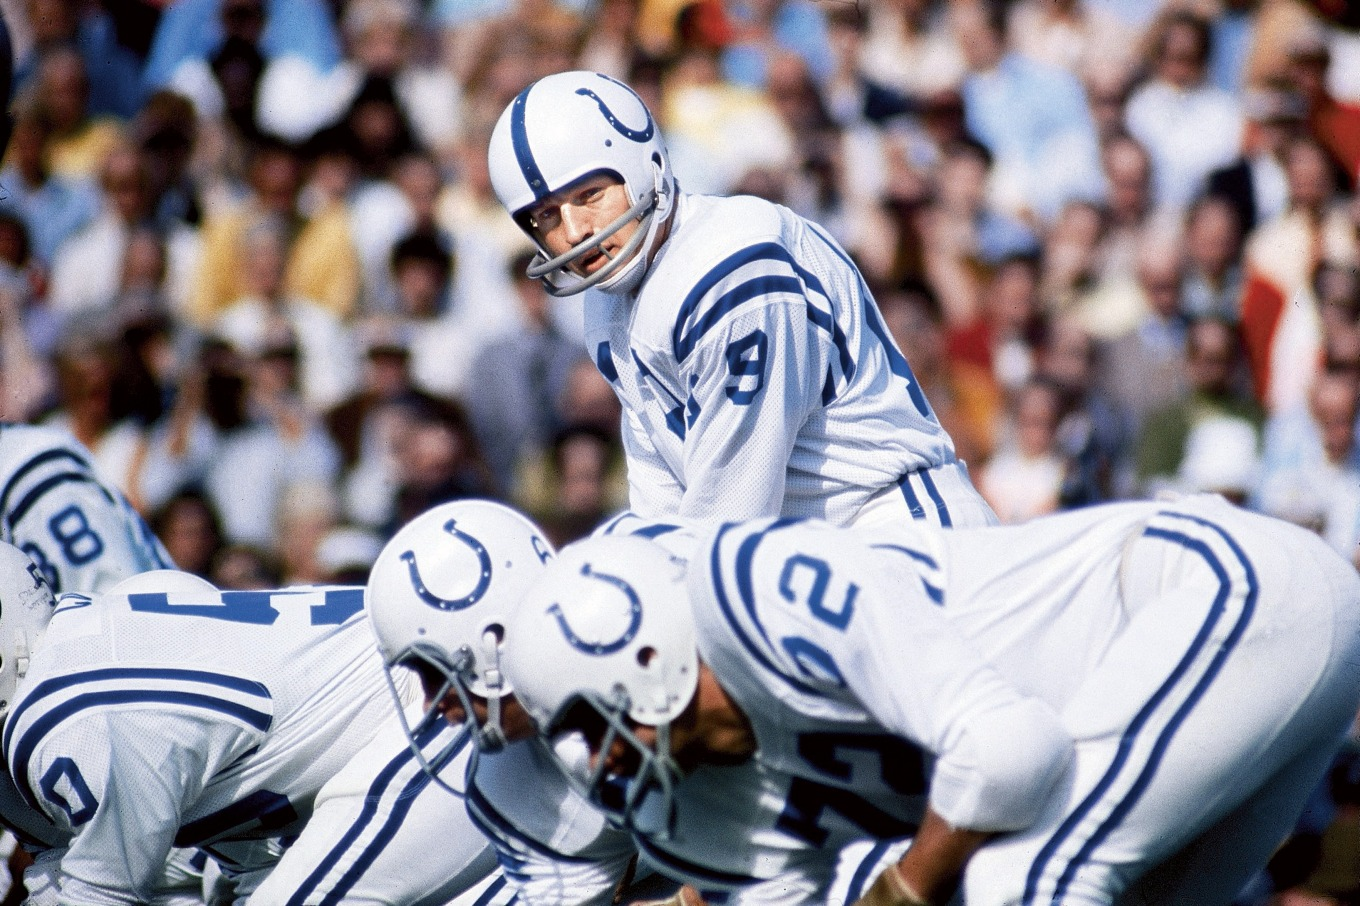 81802317-baltimore-colts-qb-johnny-unitas-super-bowl-v